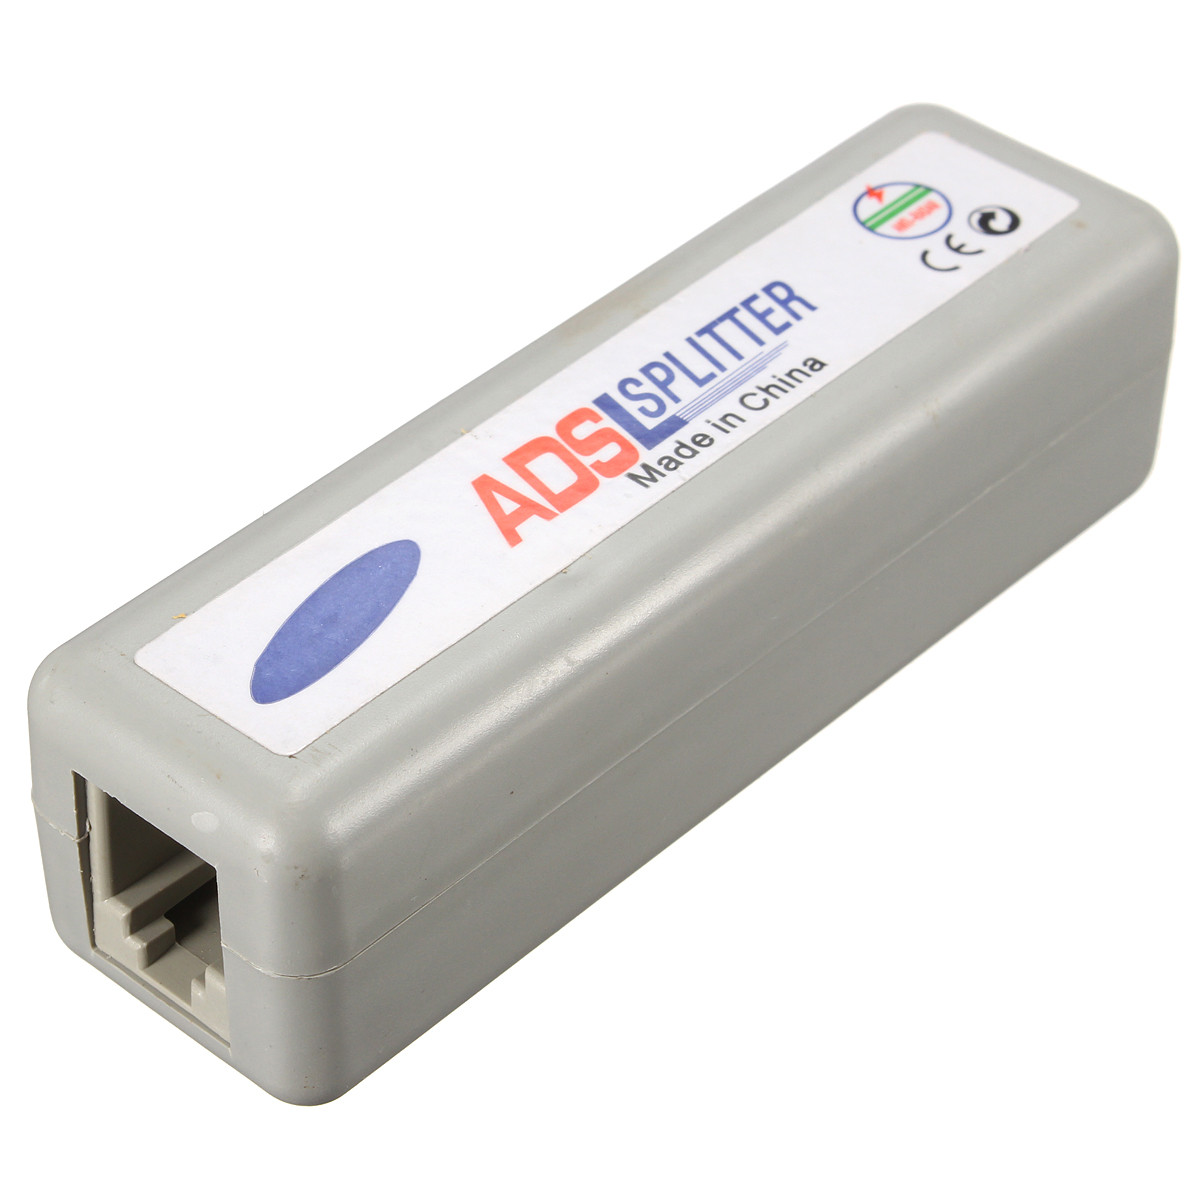 Practical Quality RJ11 ADSL Line Splitter Fax Modem Broadband Phone Network Jack Noise Filter